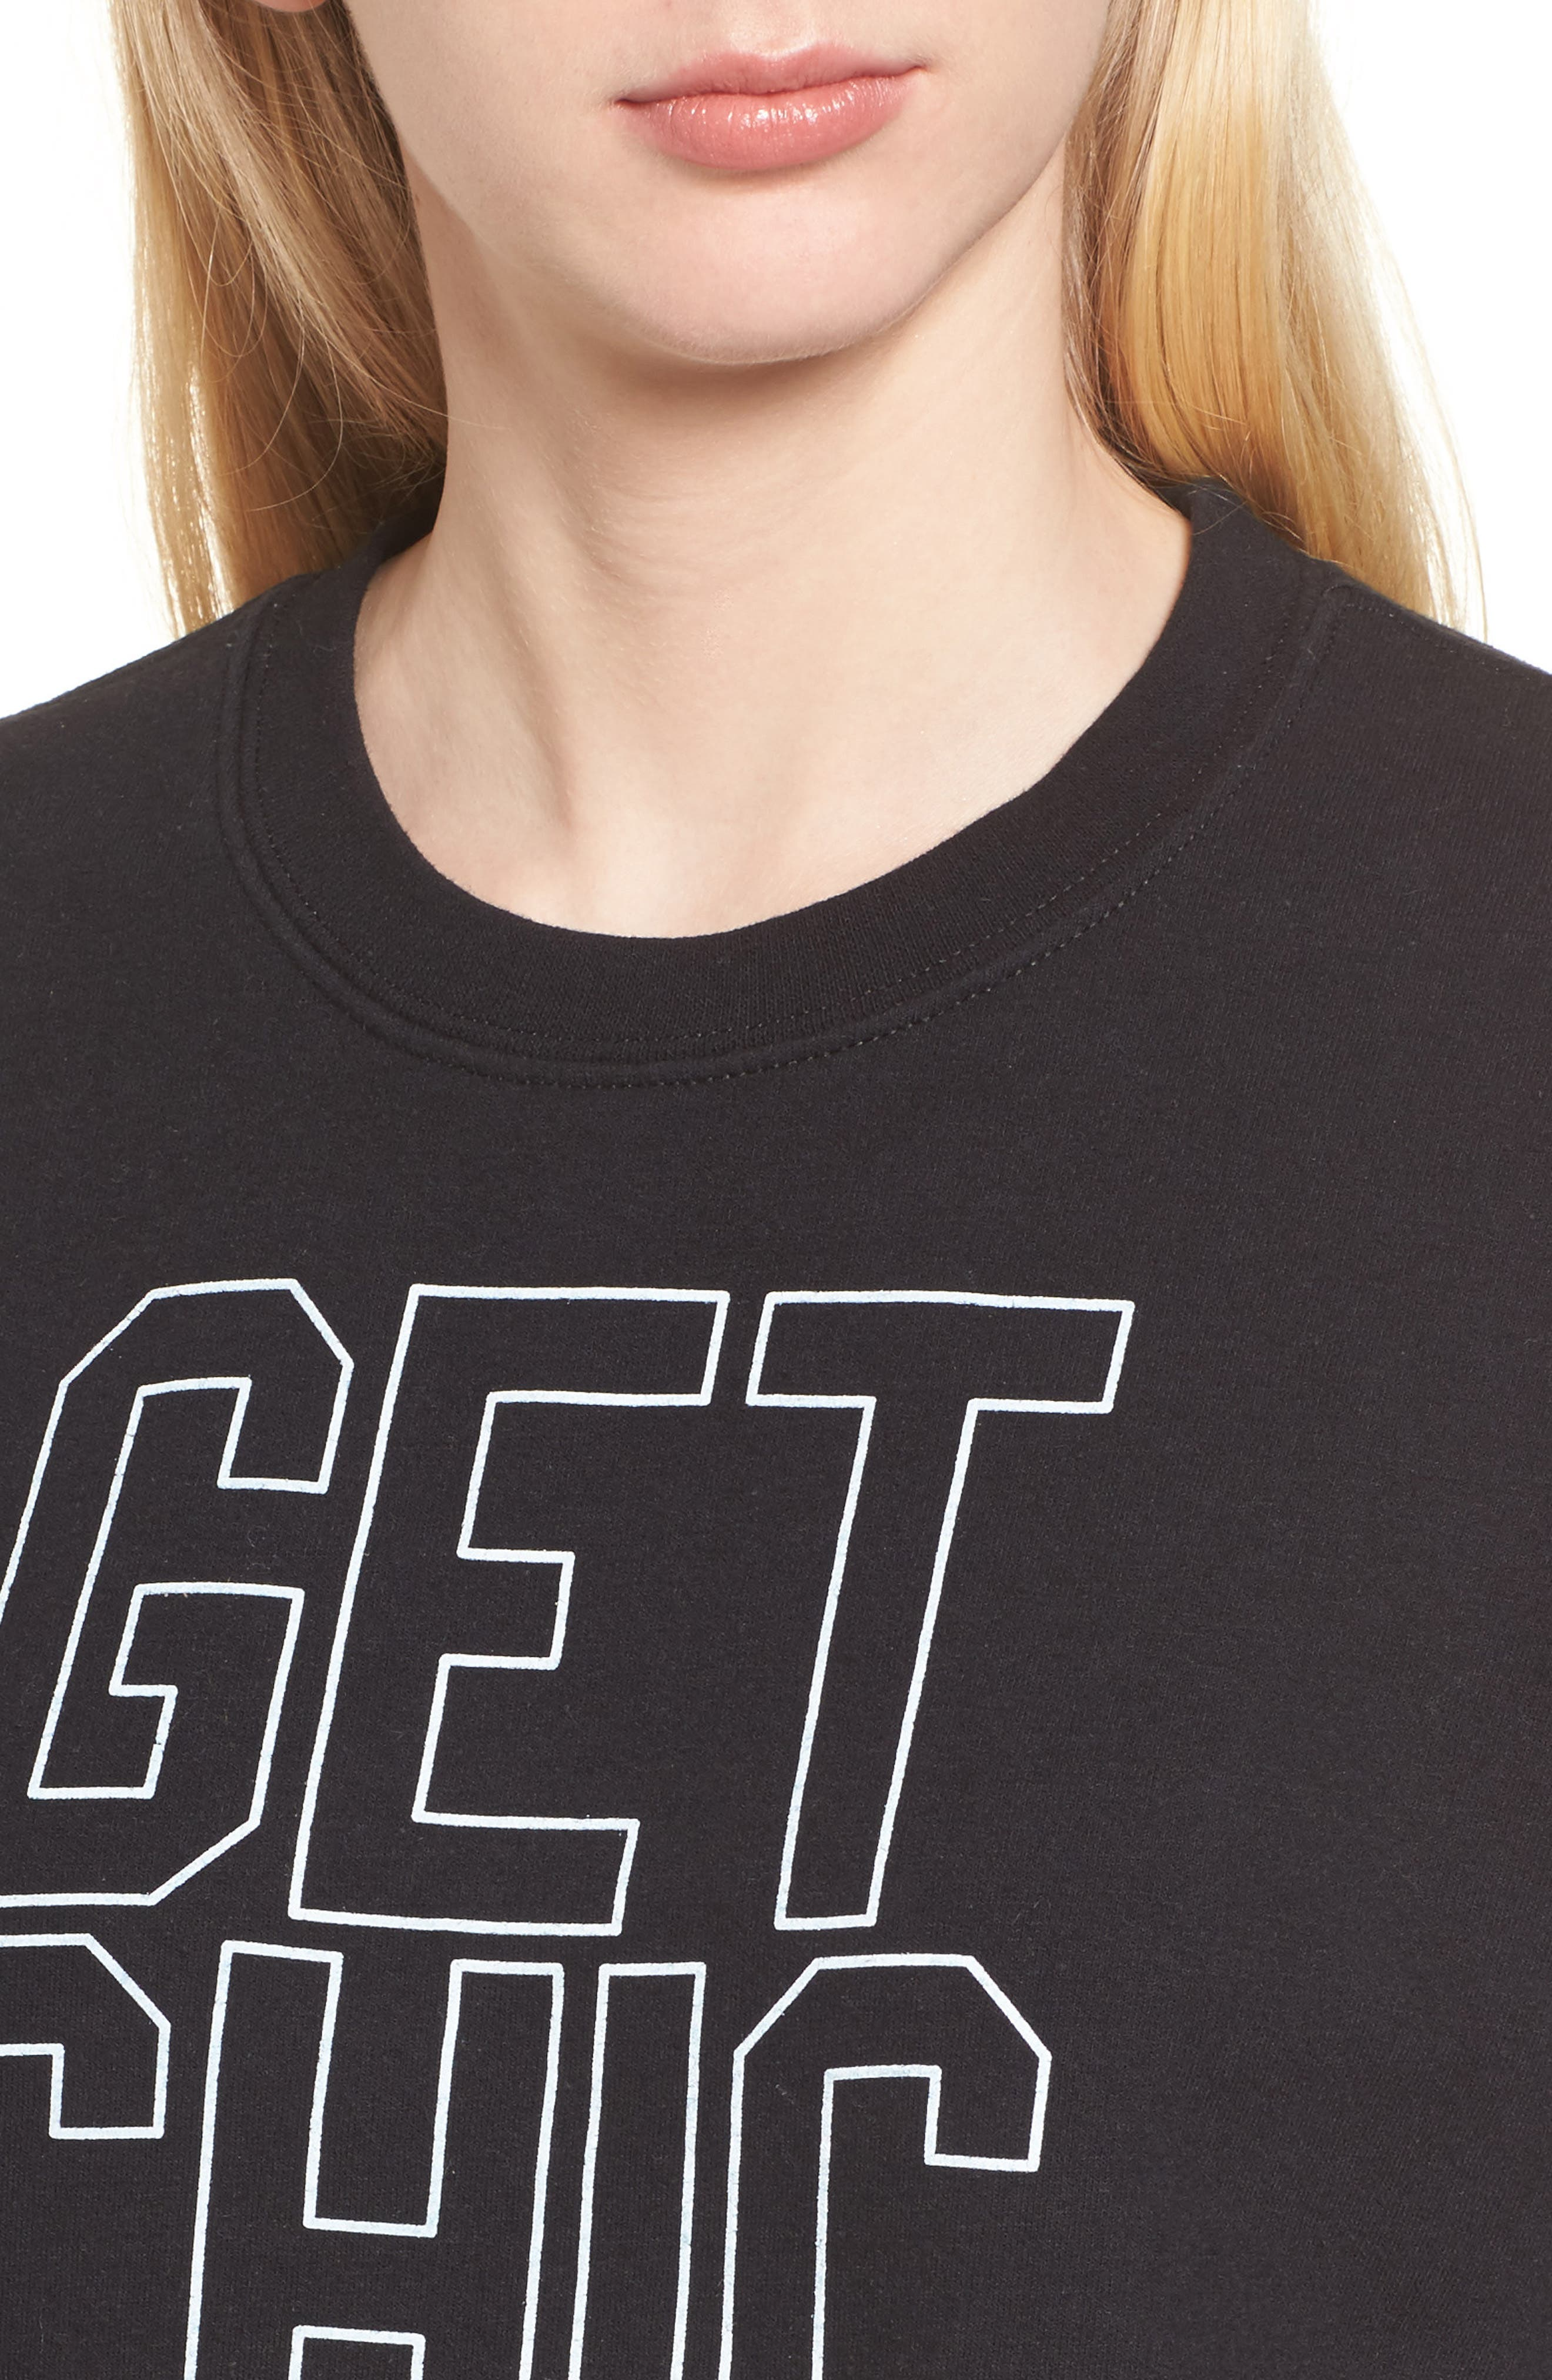 Get Chic Done Sweatshirt,                             Alternate thumbnail 4, color,                             001